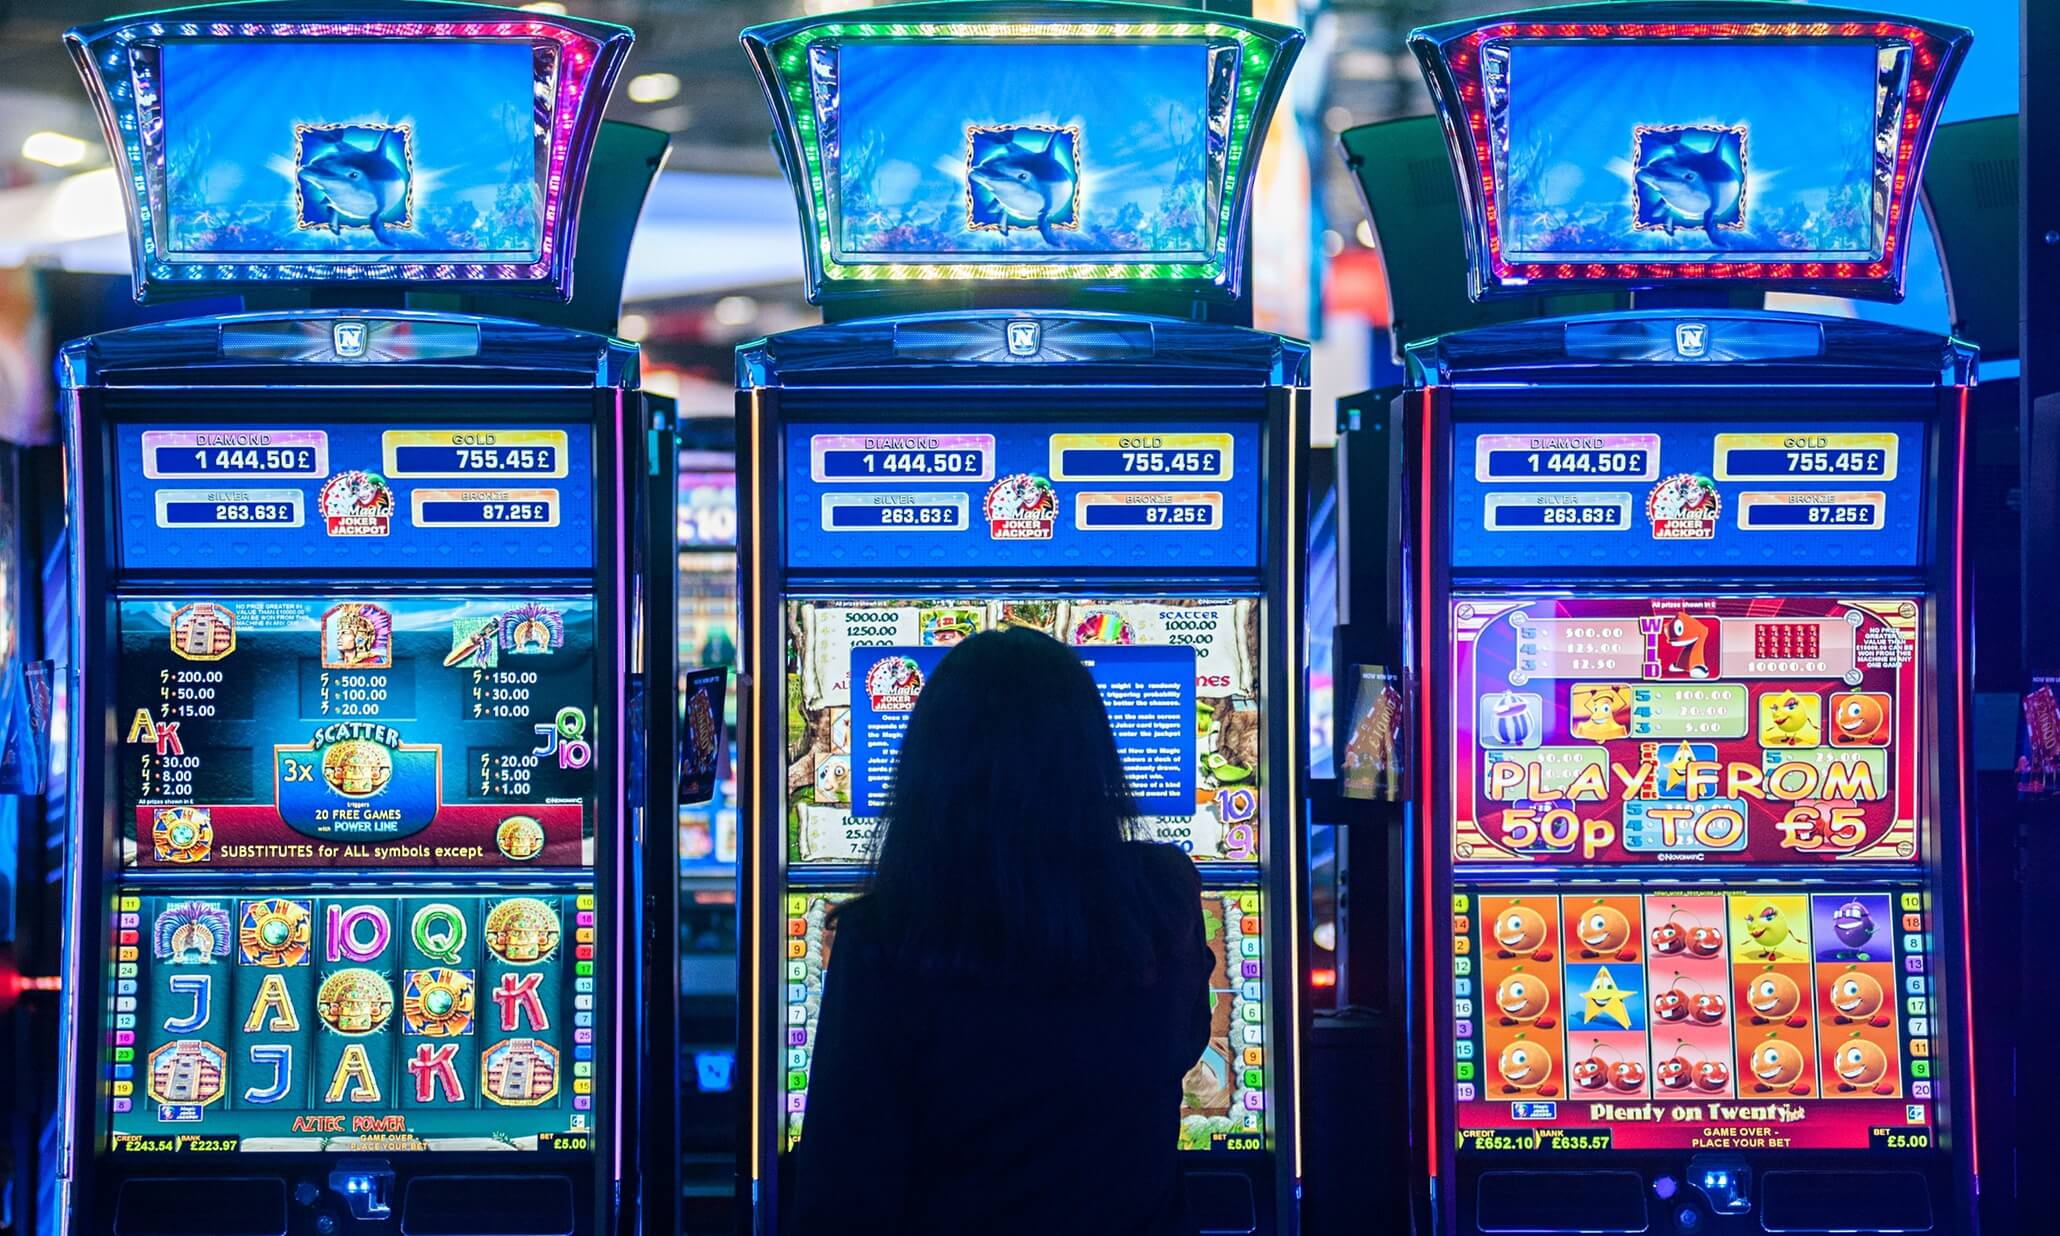 1 - MEGA888 Online Slot Games as supplement cell fortresses